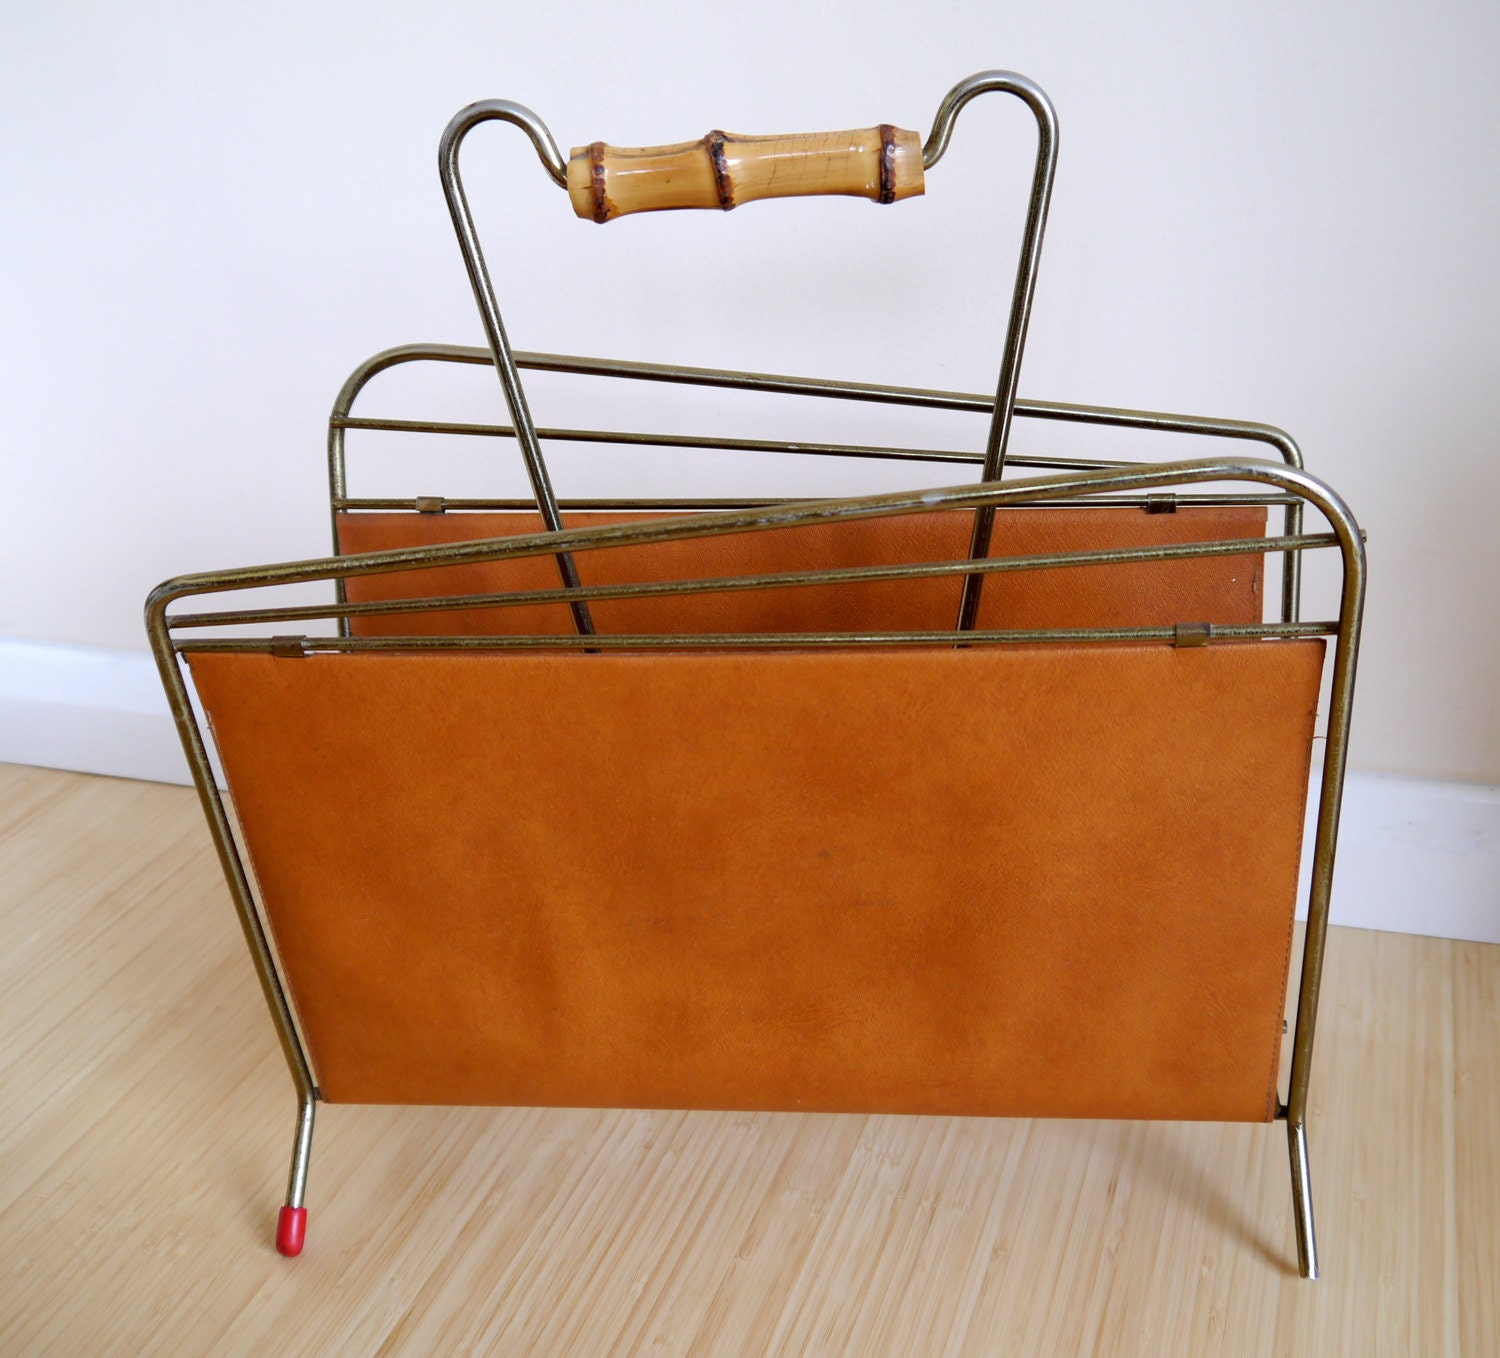 Fab vintage Magazine Rack in wire and faux leather. Retro 1950s or 1960s.